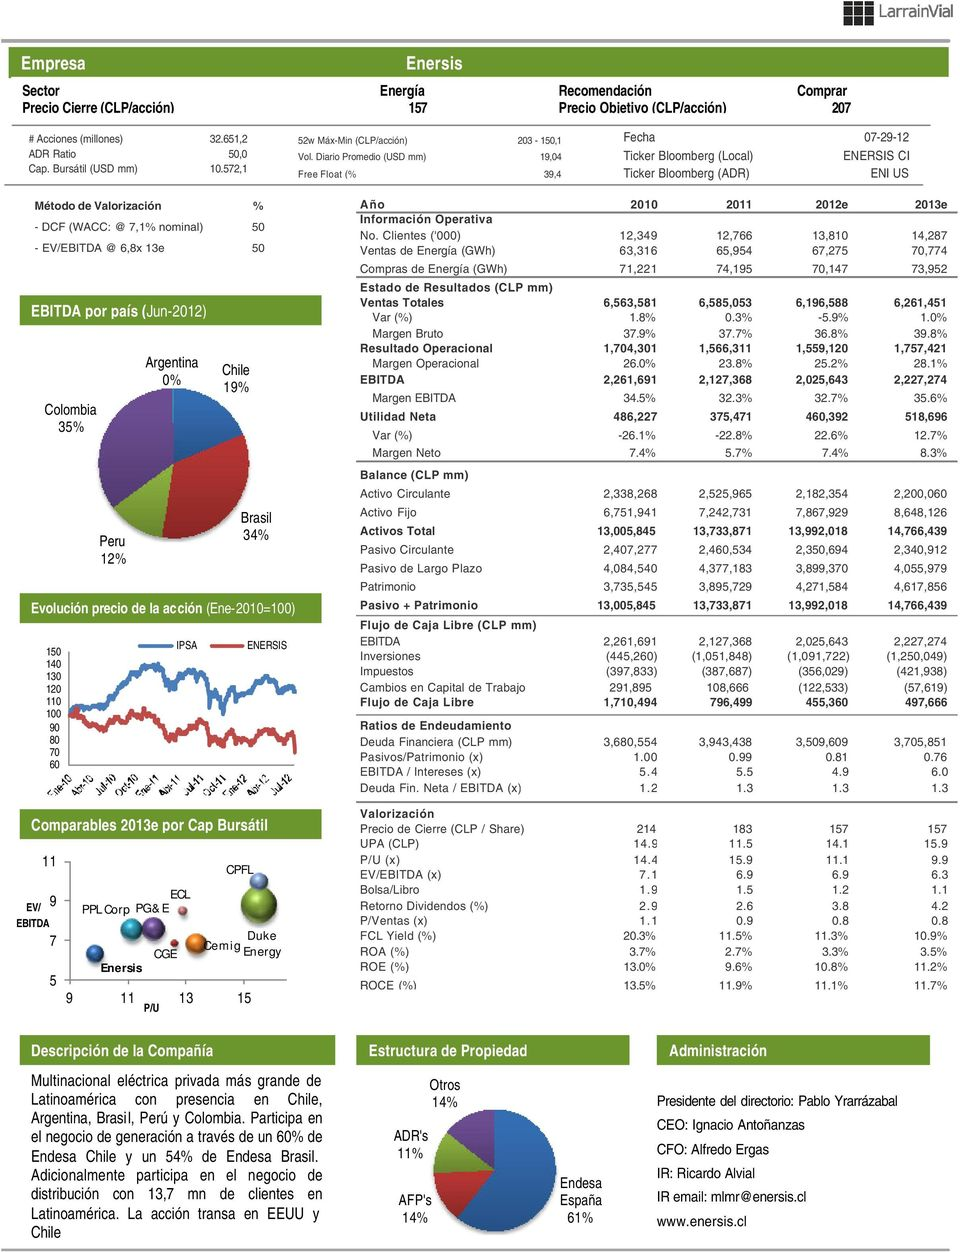 Diario Promedio (USD mm) 19,04 Free Float (%) 39,4 Fecha 07-29-12 Ticker Bloomberg (Local) ENERSIS CI Ticker Bloomberg (ADR) ENI US Método de Valorización % - DCF (WACC: @ 7,1% nominal) 50 -